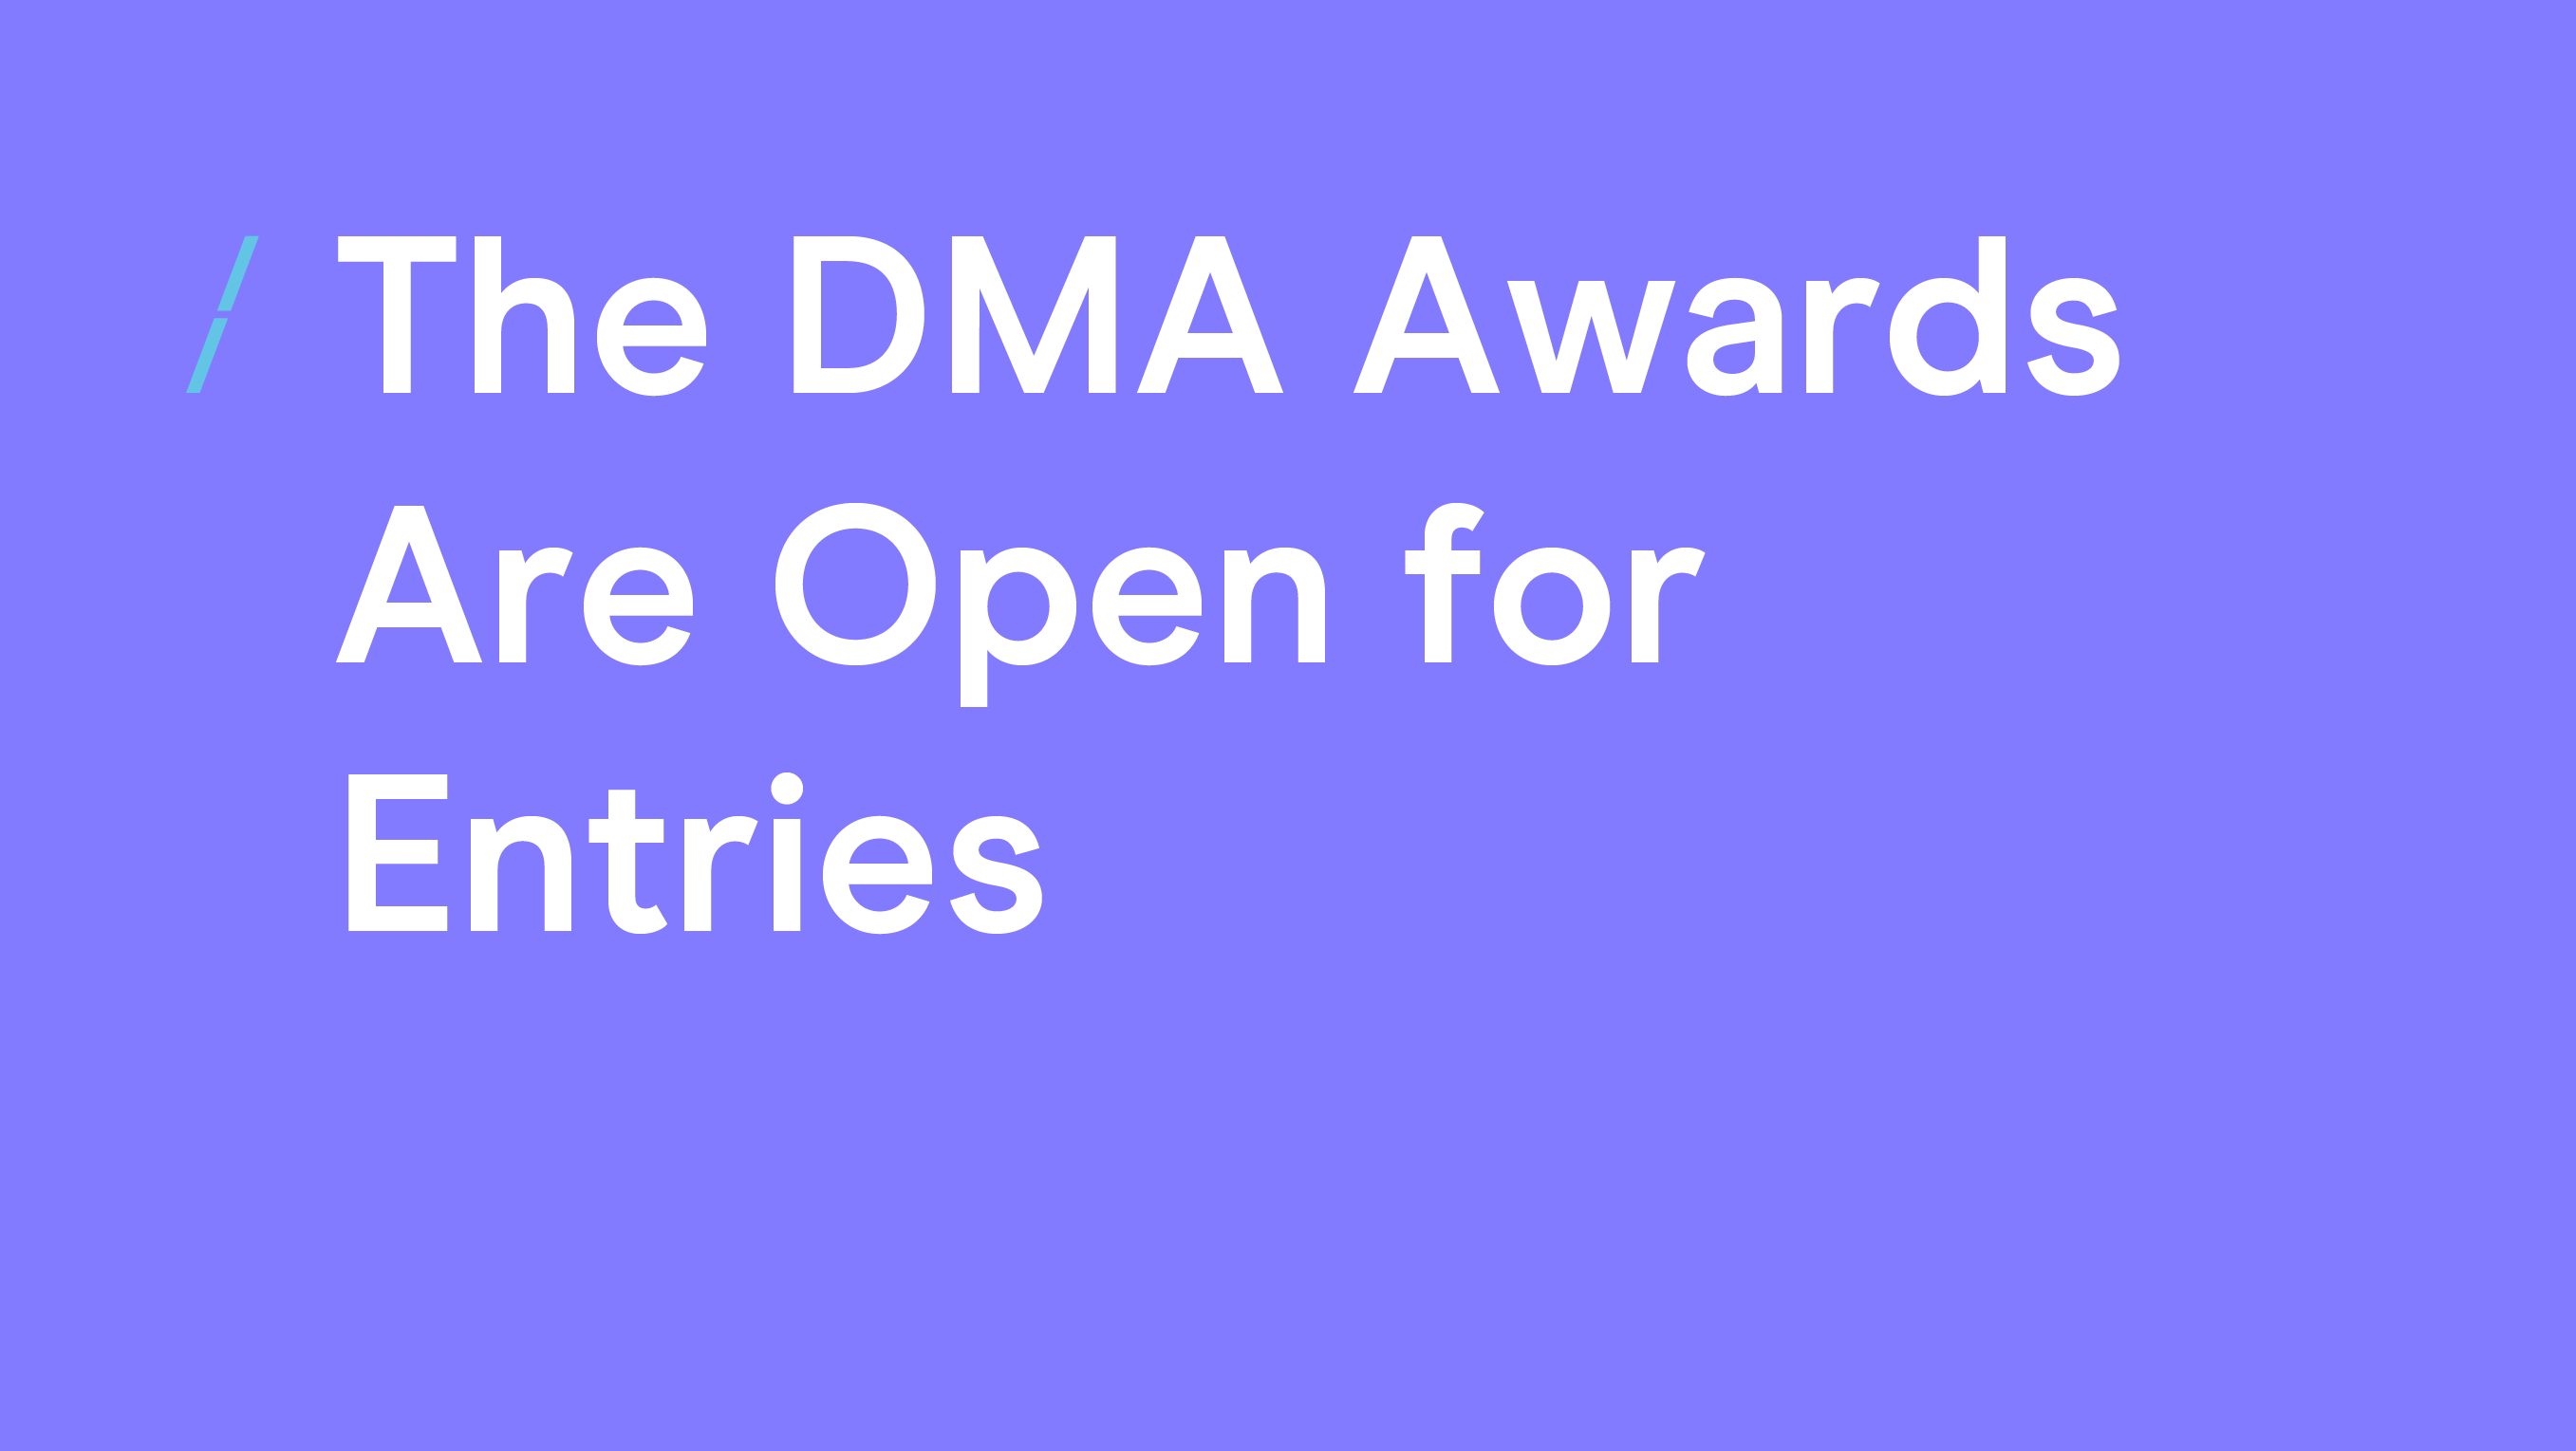 Awards-open-for entries-108.png